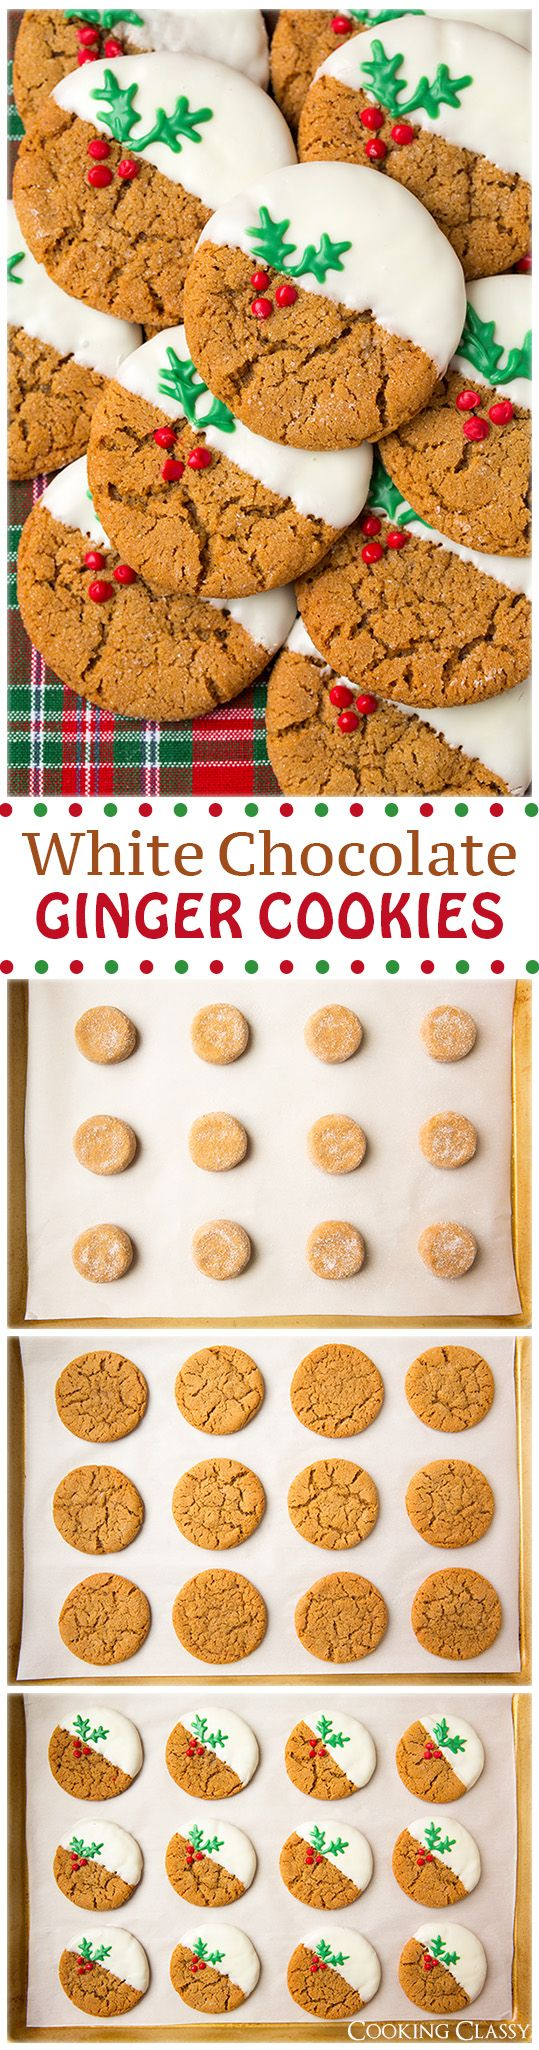 White Chocolate Dipped Ginger Cookies - perfect decoration for Christmas cookie swap!!